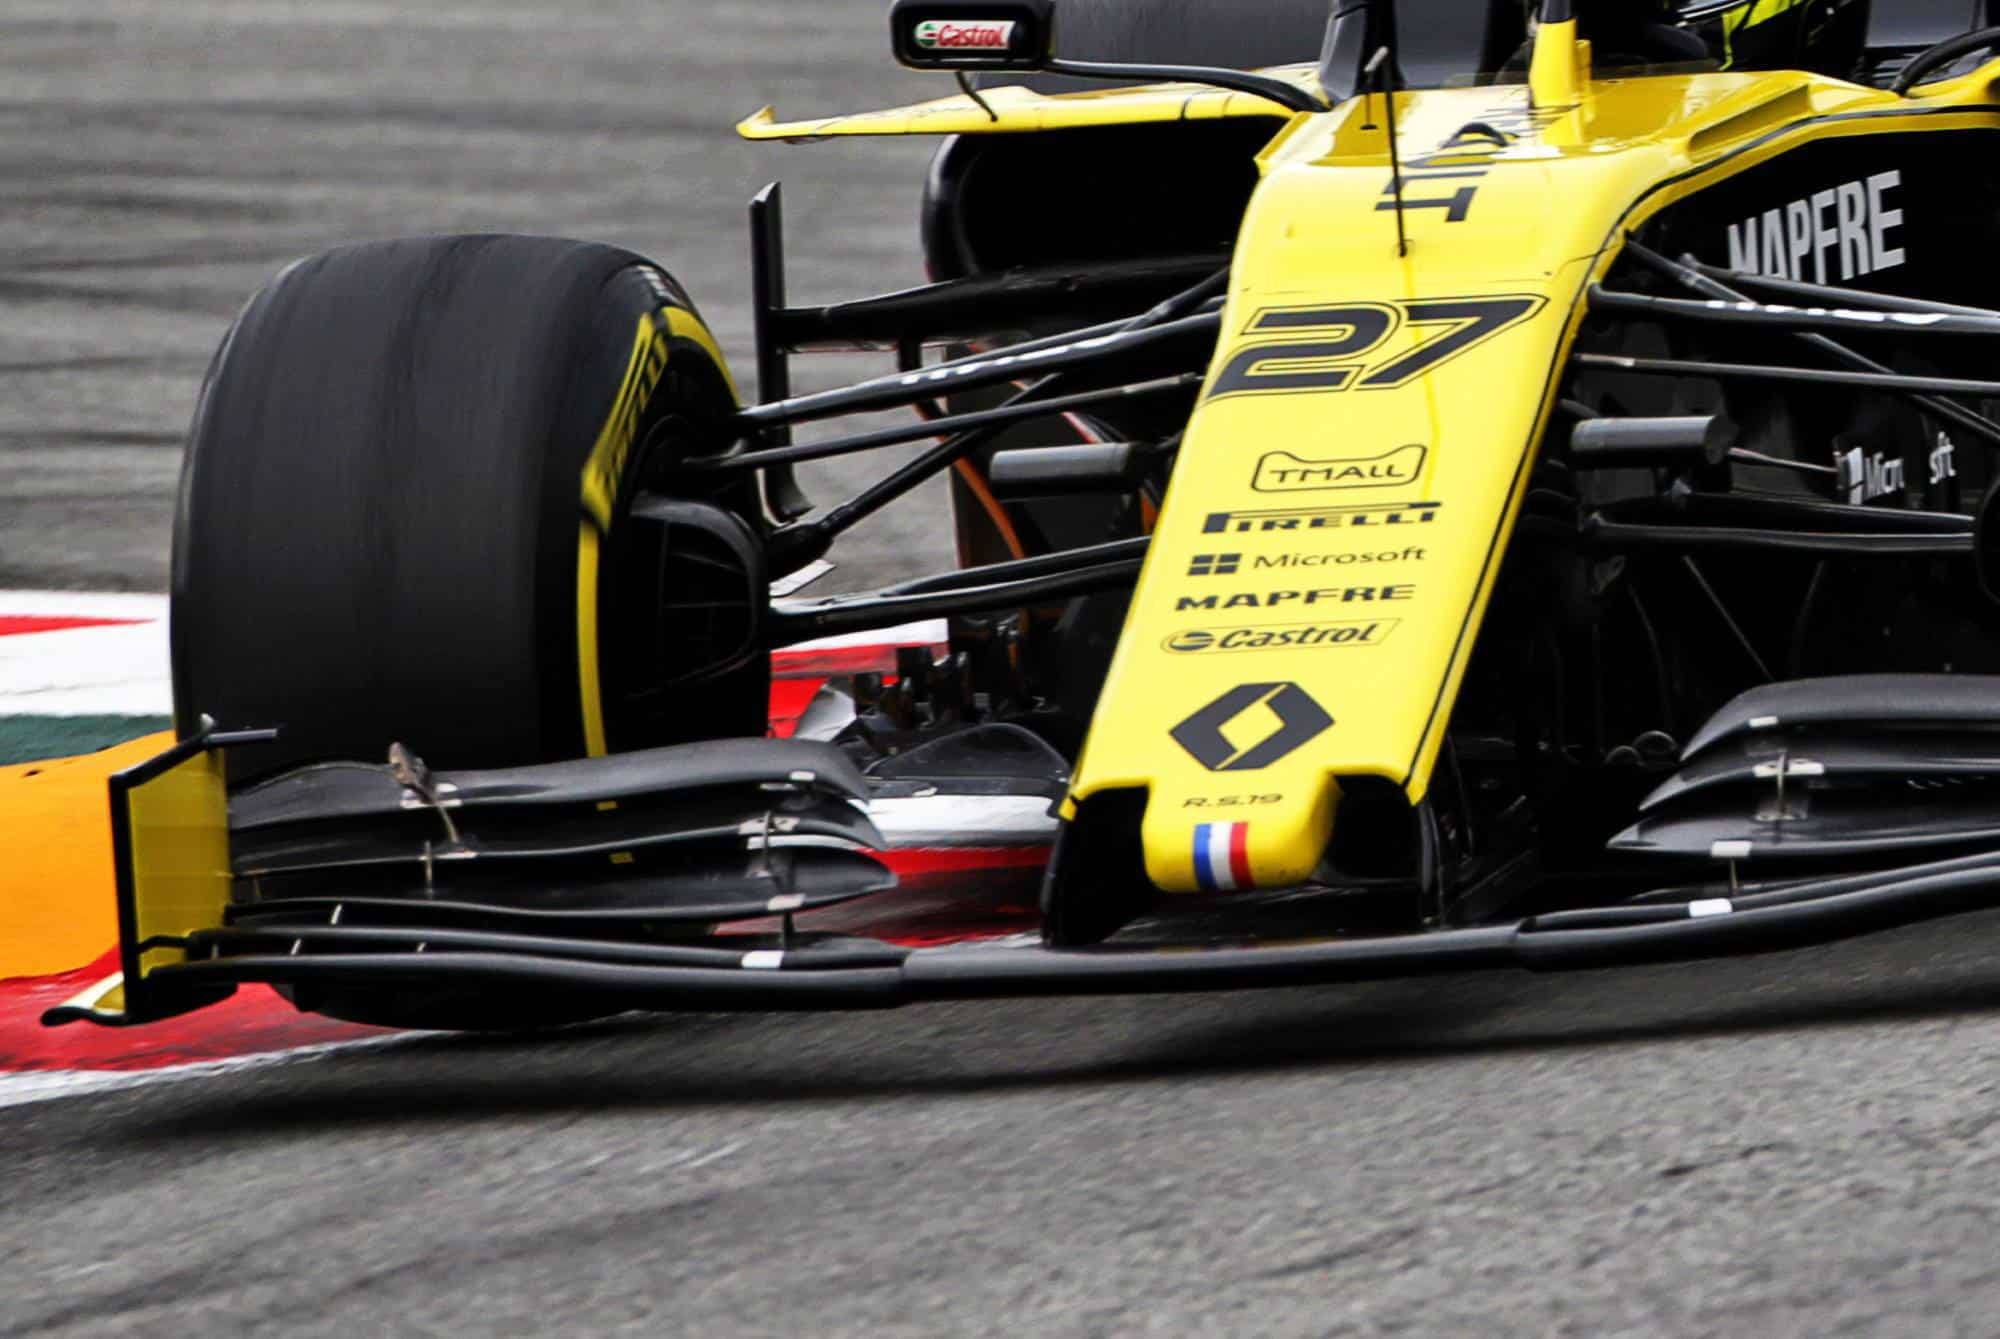 Nico Hulkenberg Renault Spanish GP F1 2019 front wing close Photo Renault